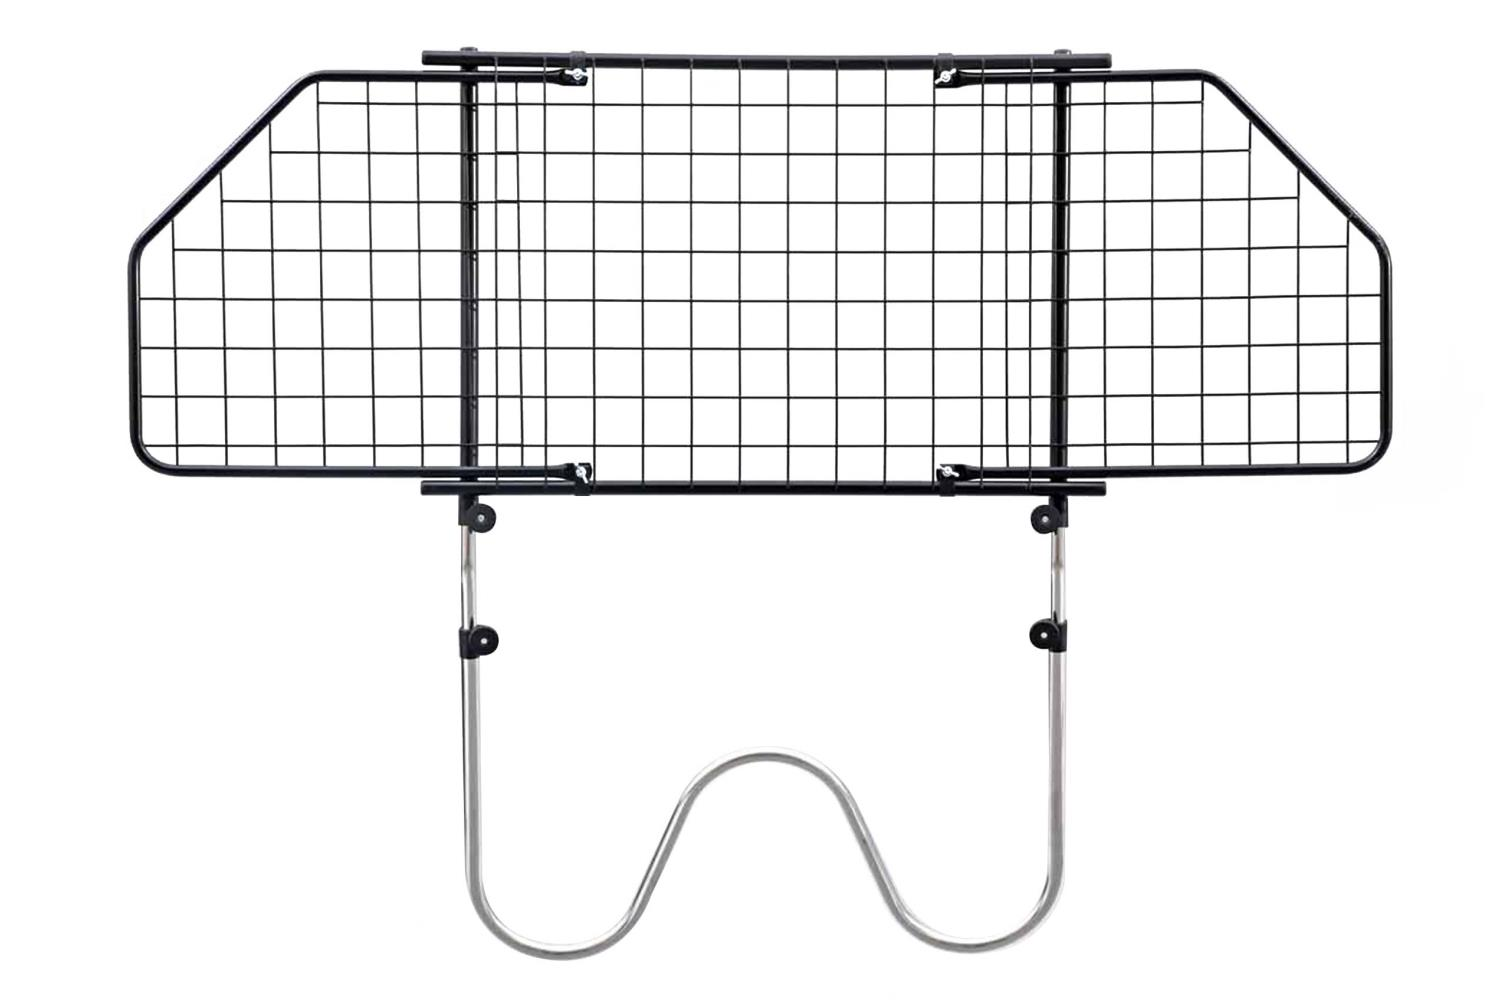 hight resolution of saunders w wire universal dog guard hundegitter hondenrek grille pare chien